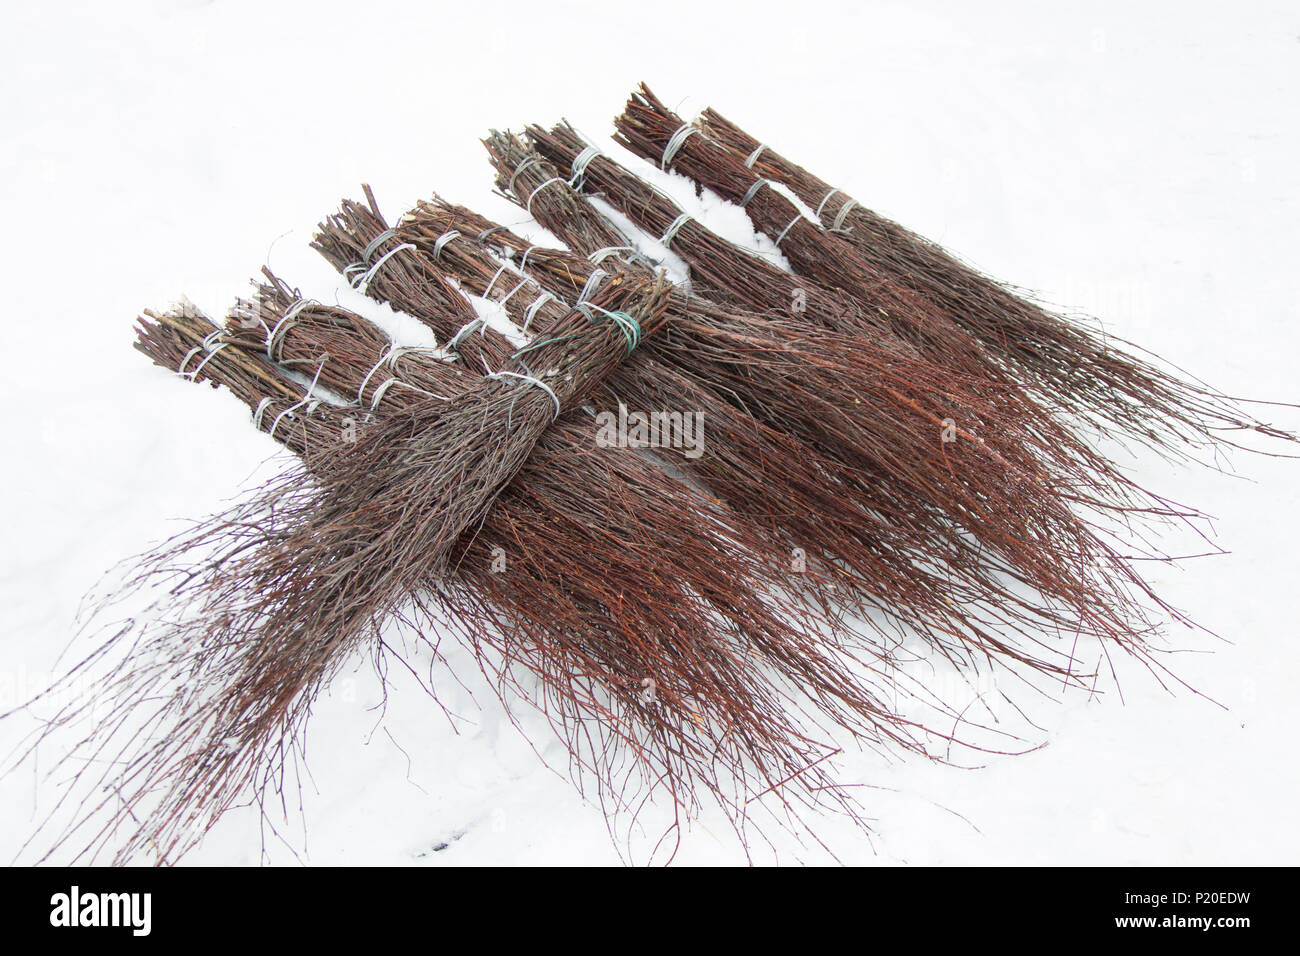 Many brooms from dry tree branches.Besom - Stock Image